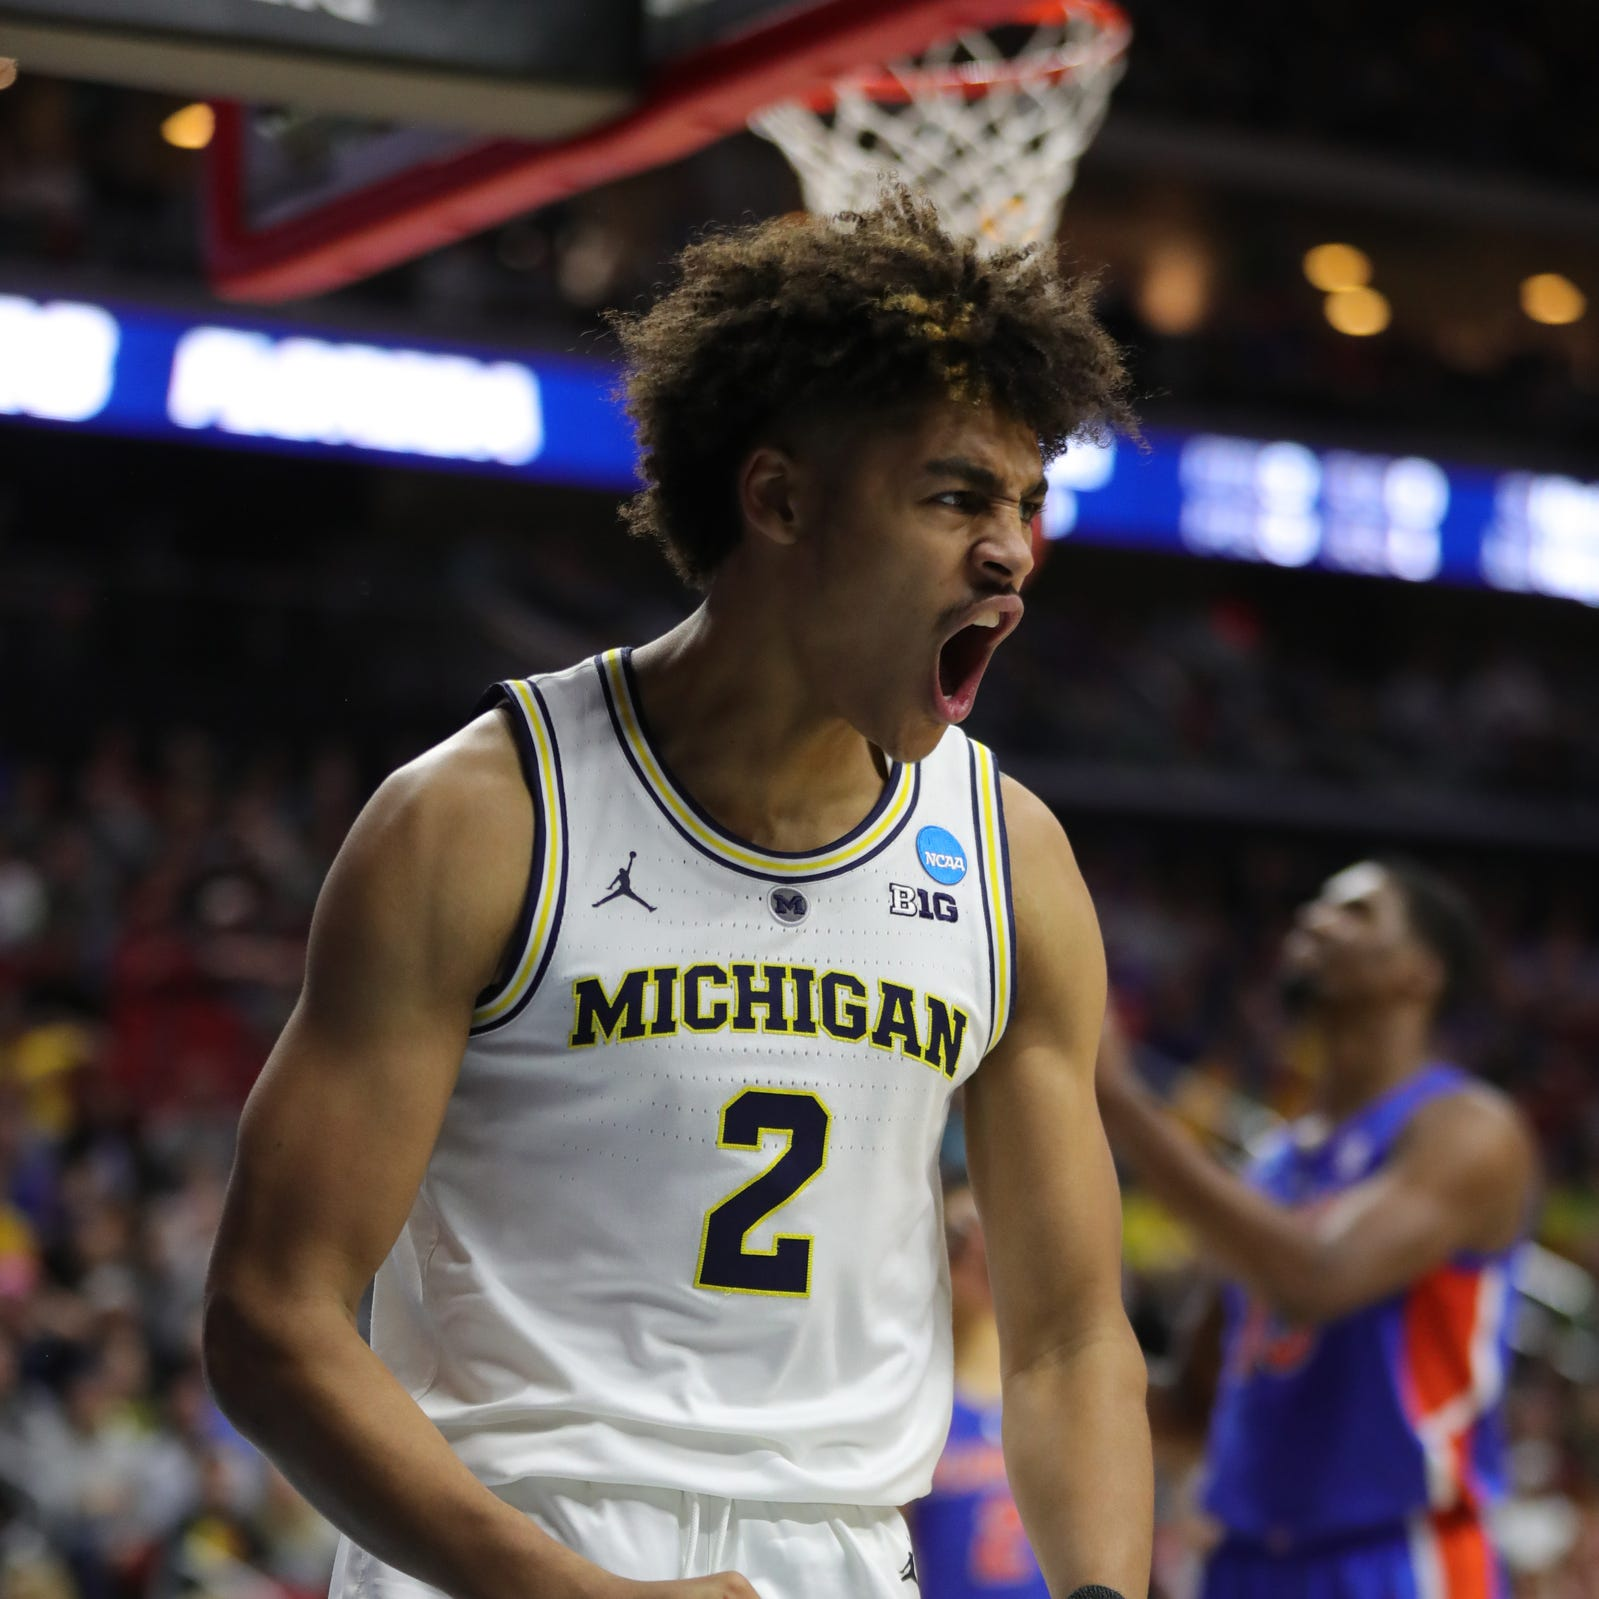 Michigan basketball dumps Florida to make Sweet 16: Observations